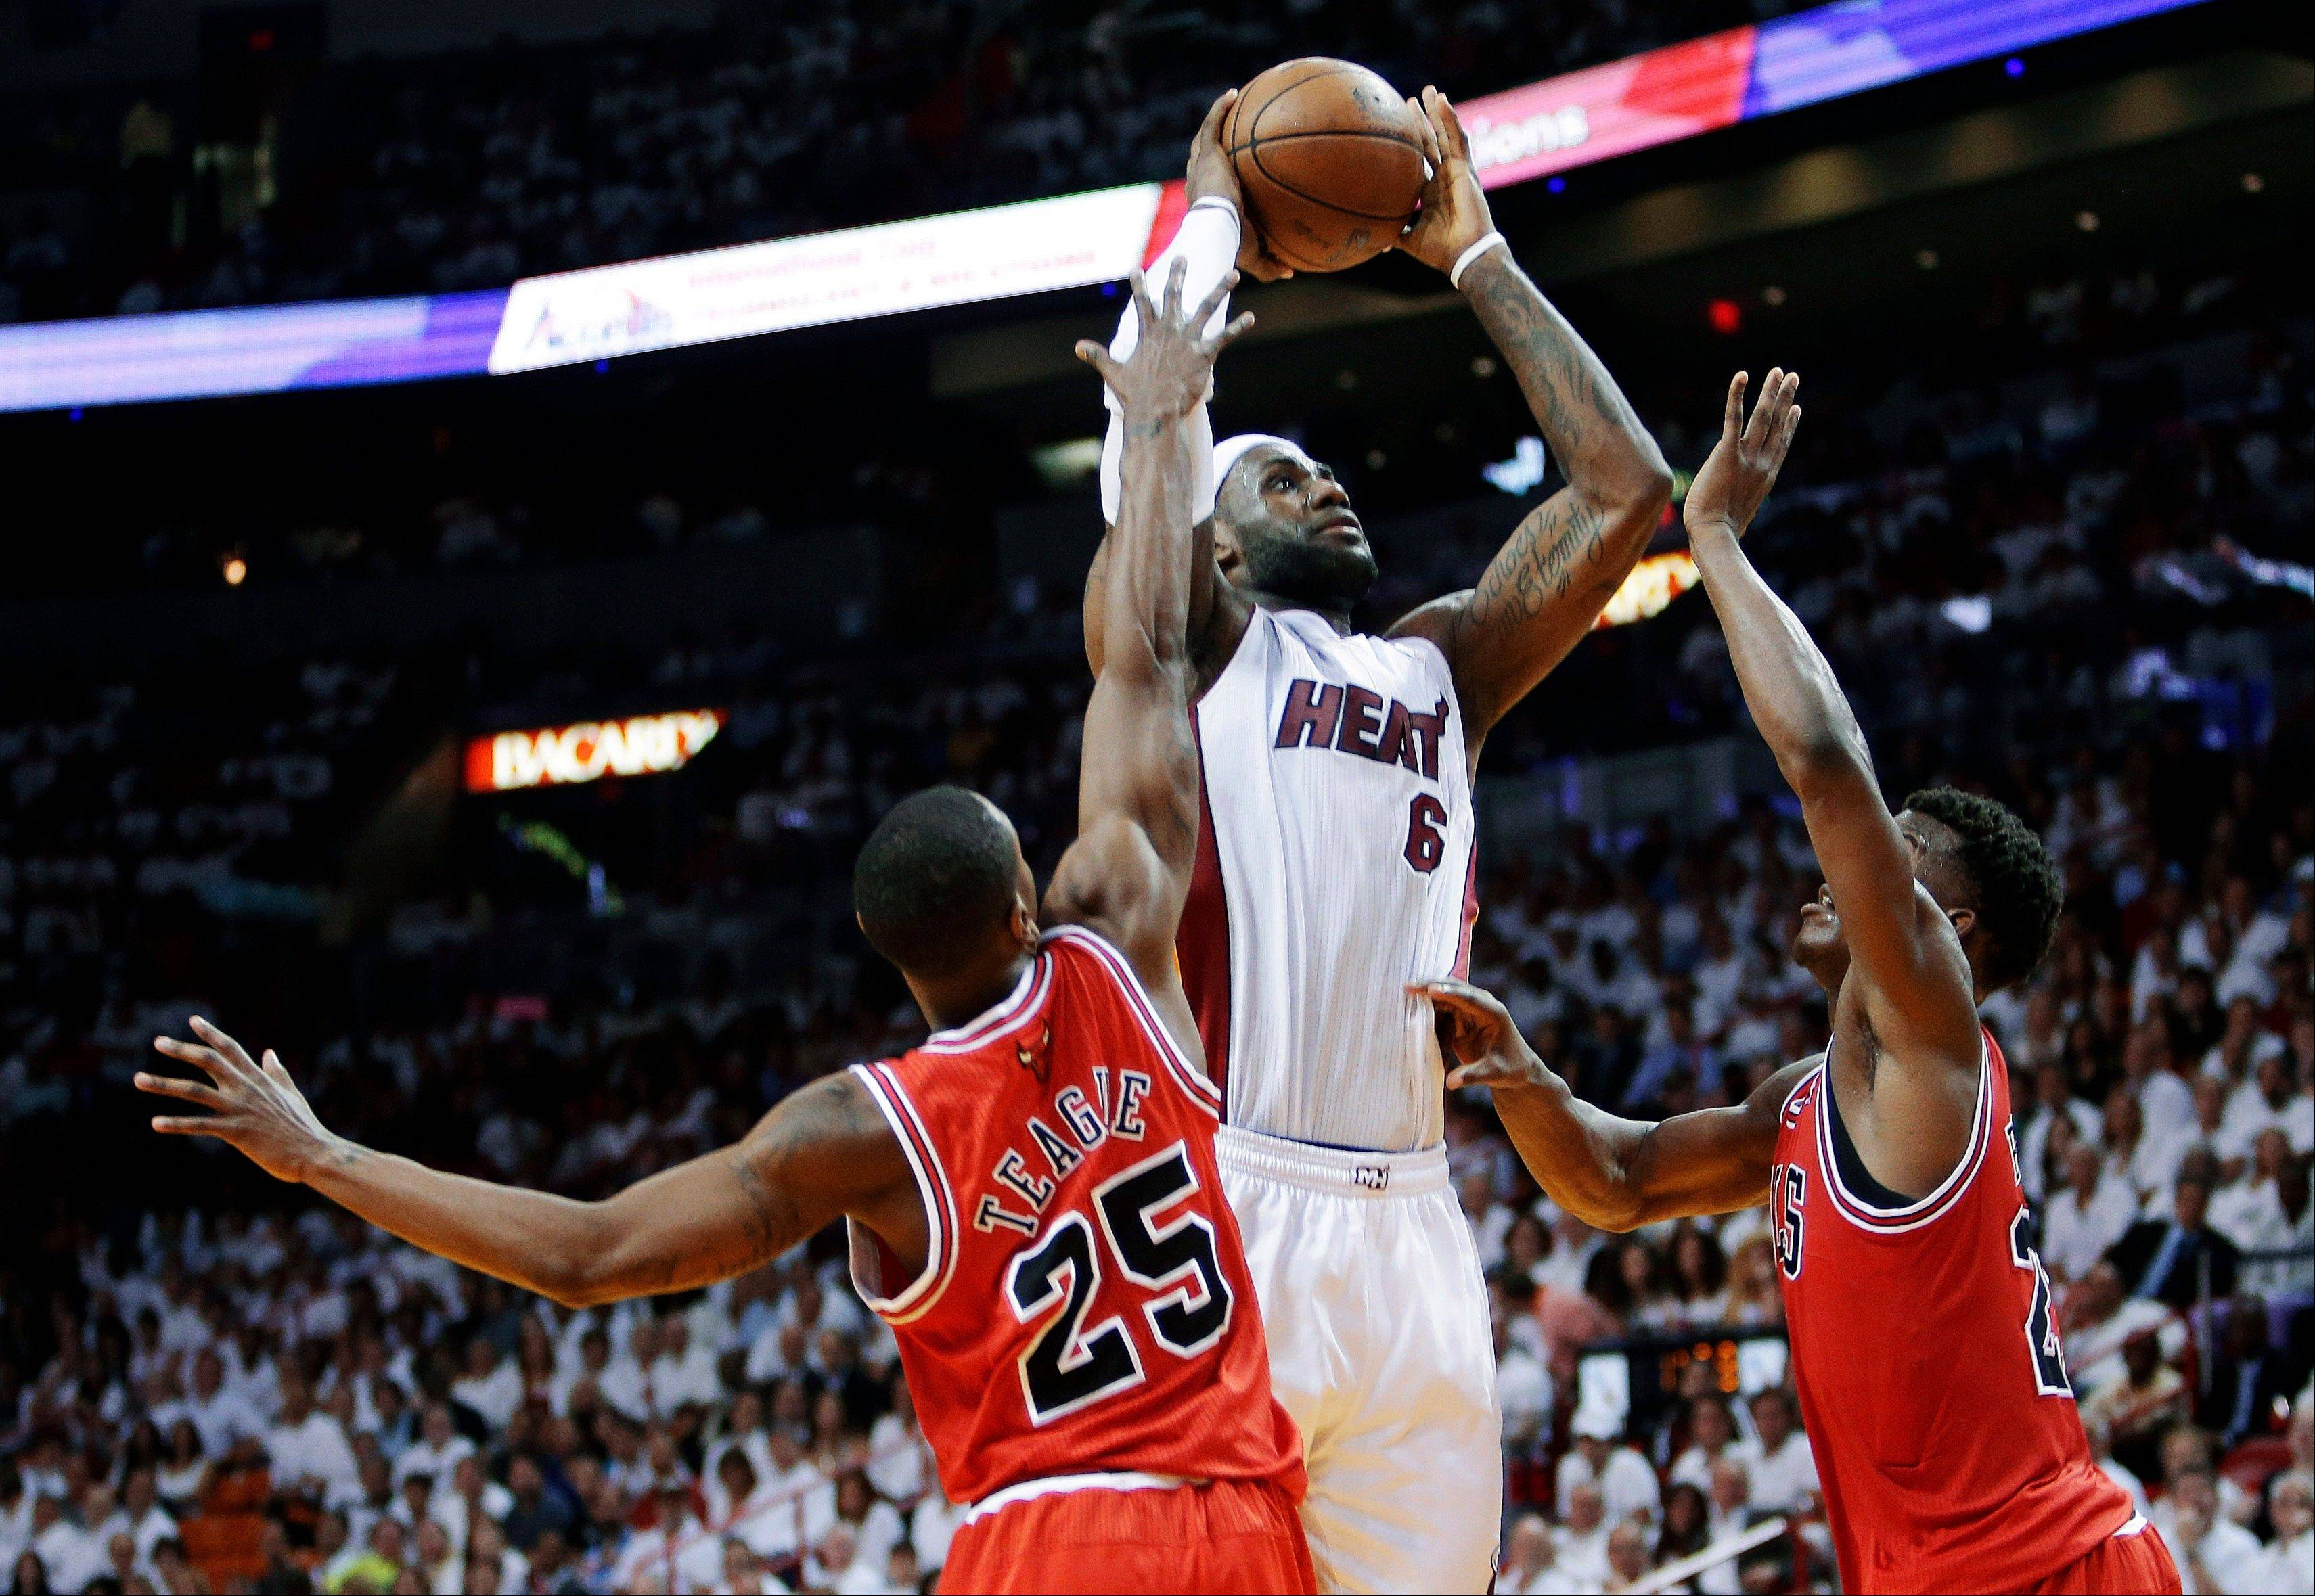 Miami Heat forward LeBron James (6) shoots against Chicago Bulls guard Marquis Teague (25) and forward Jimmy Butler, right, during the first half of Game 1 of the NBA basketball playoff series in the Eastern Conference semifinals, Monday, May 6, 2013 in Miami.